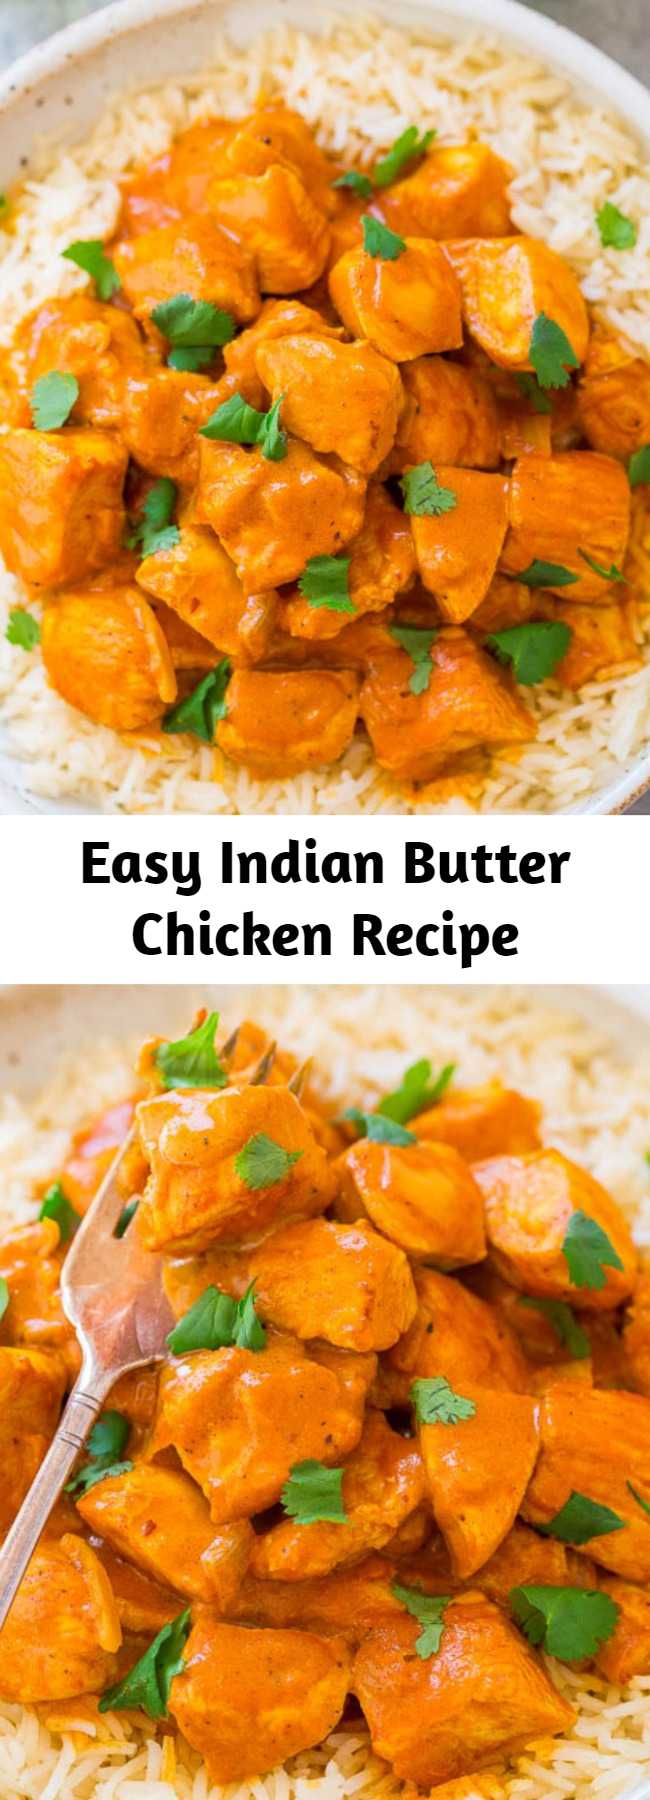 Easy Indian Butter Chicken Recipe - An EASY, ONE-POT recipe for a classic Indian favorite!! Juicy, BUTTERY chicken simmered in a CREAMY tomato-based sauce! Next time you're craving Indian food, you can make it yourself in 30 minutes!!